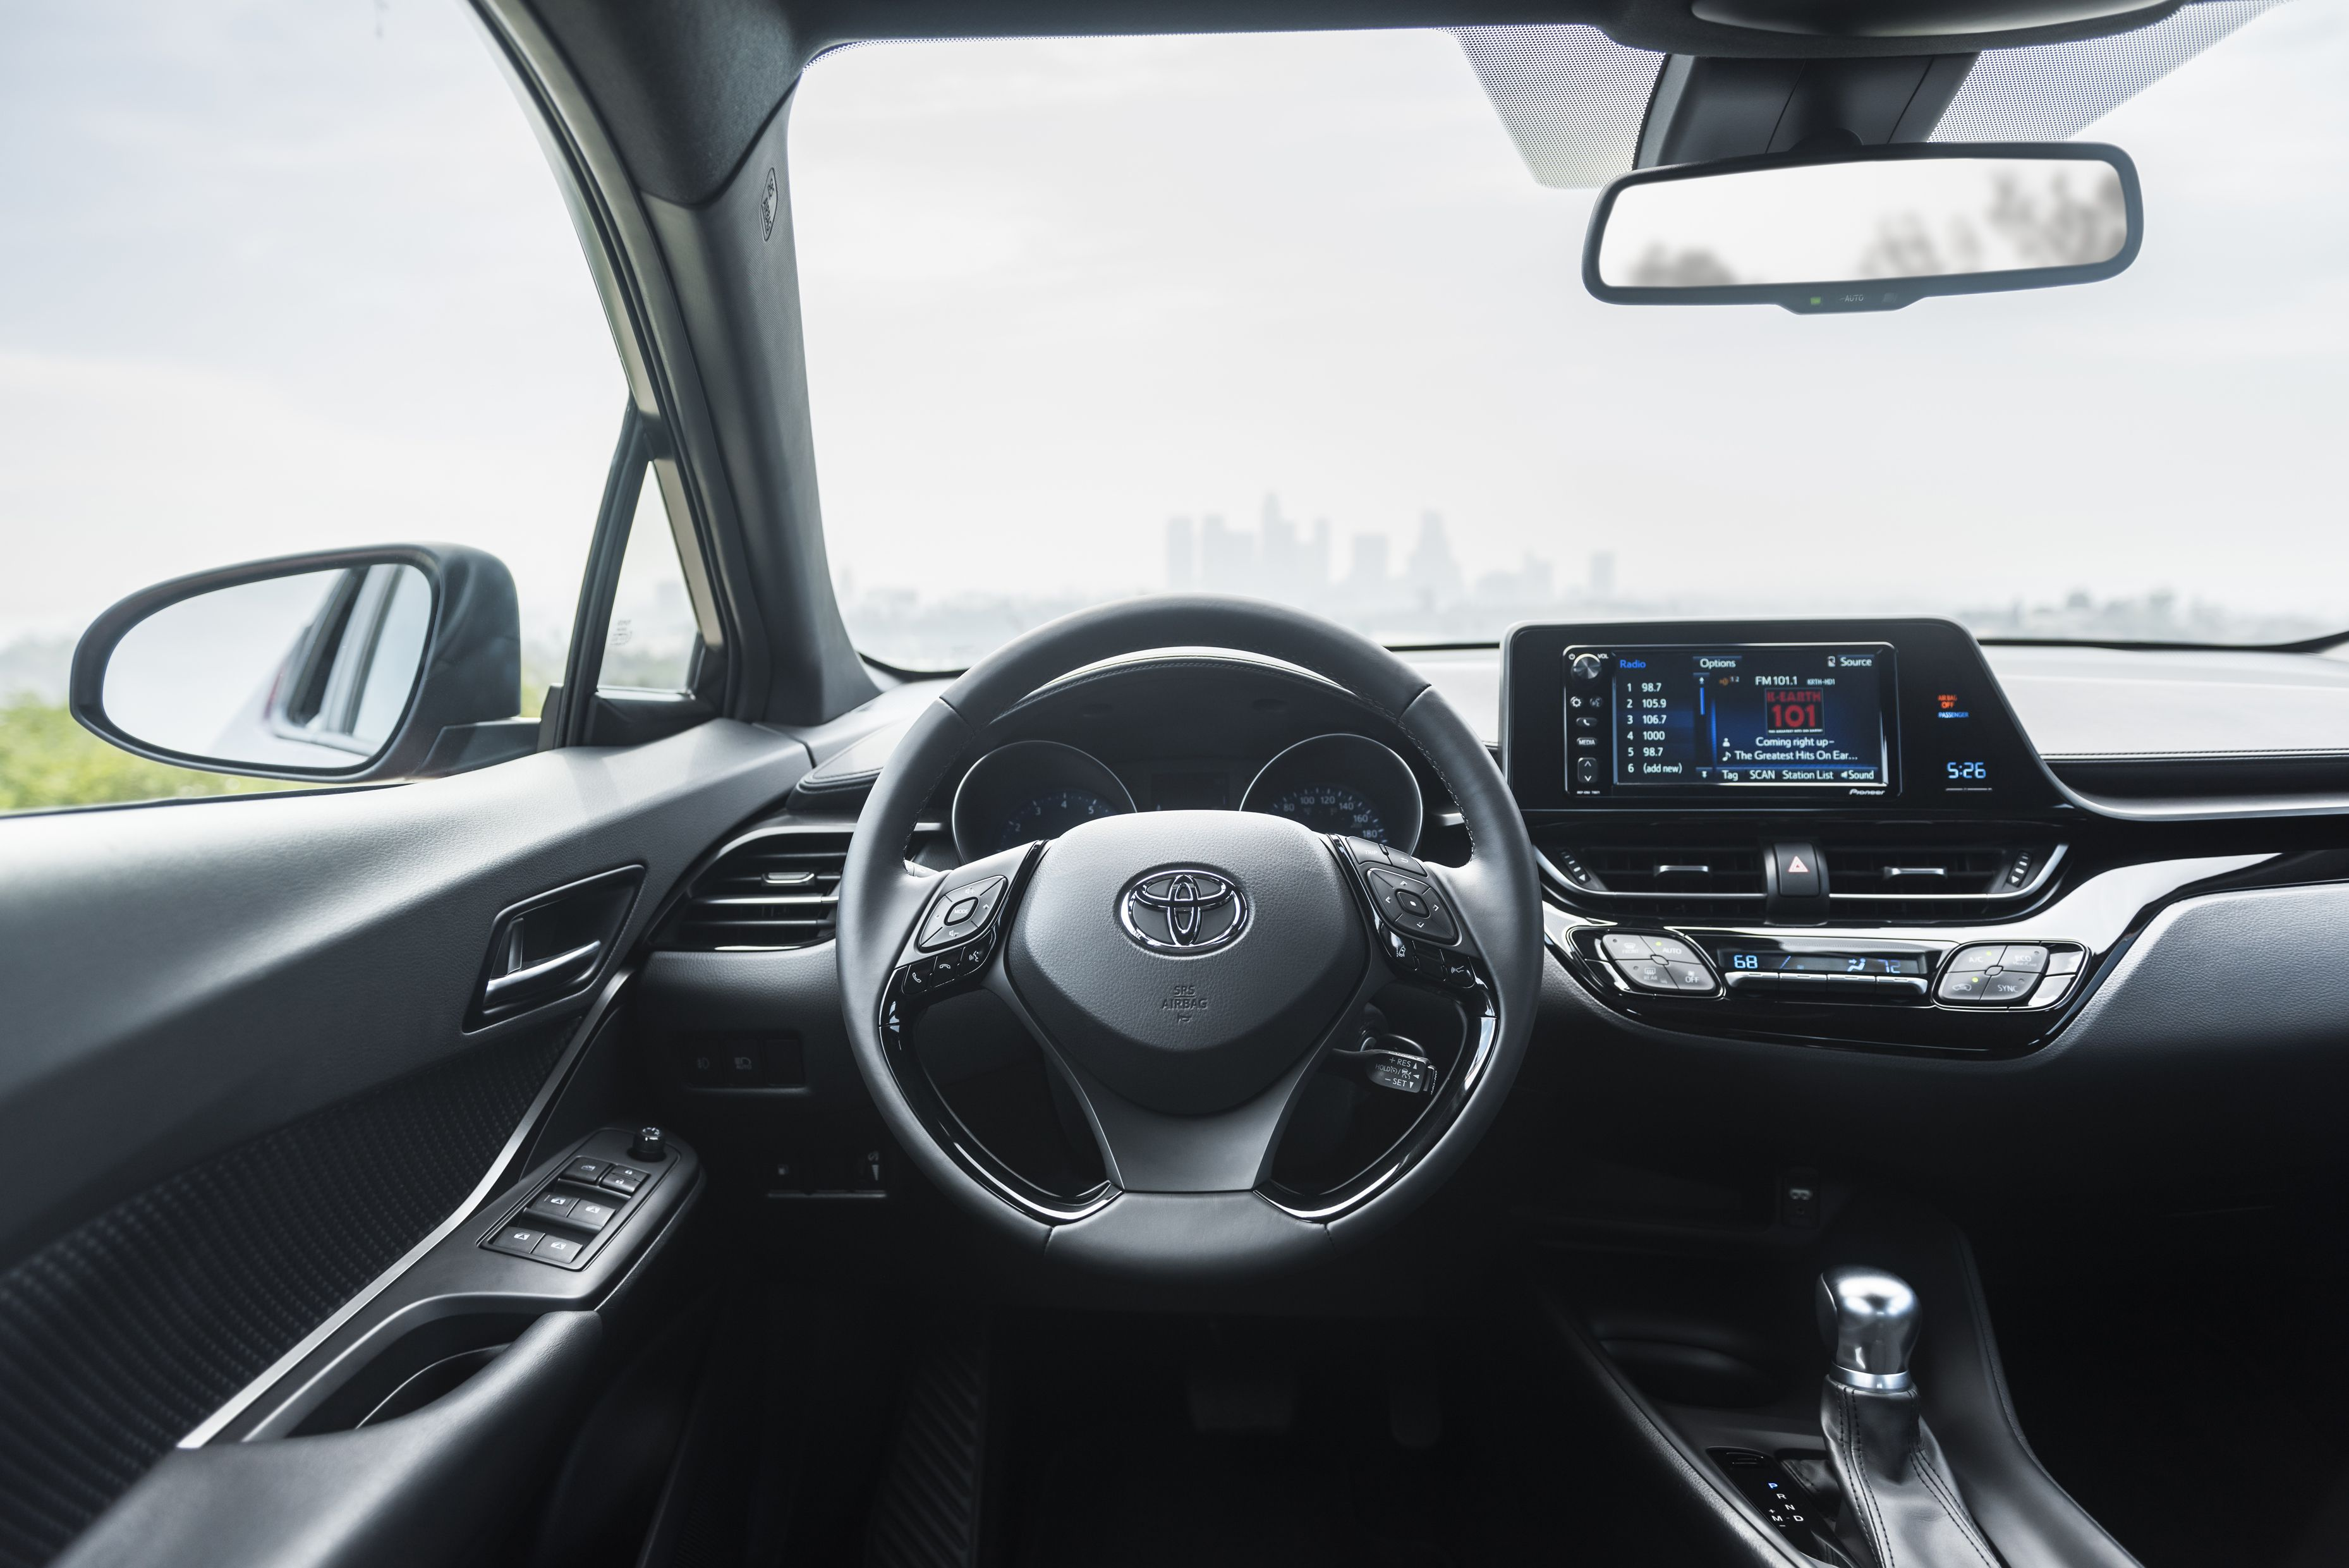 Make Your Drive Your Own With The 4 2 In Tft Multi Information Display With Customization Settings In The 2018ch R Toyota C Hr Toyota Fuel Economy